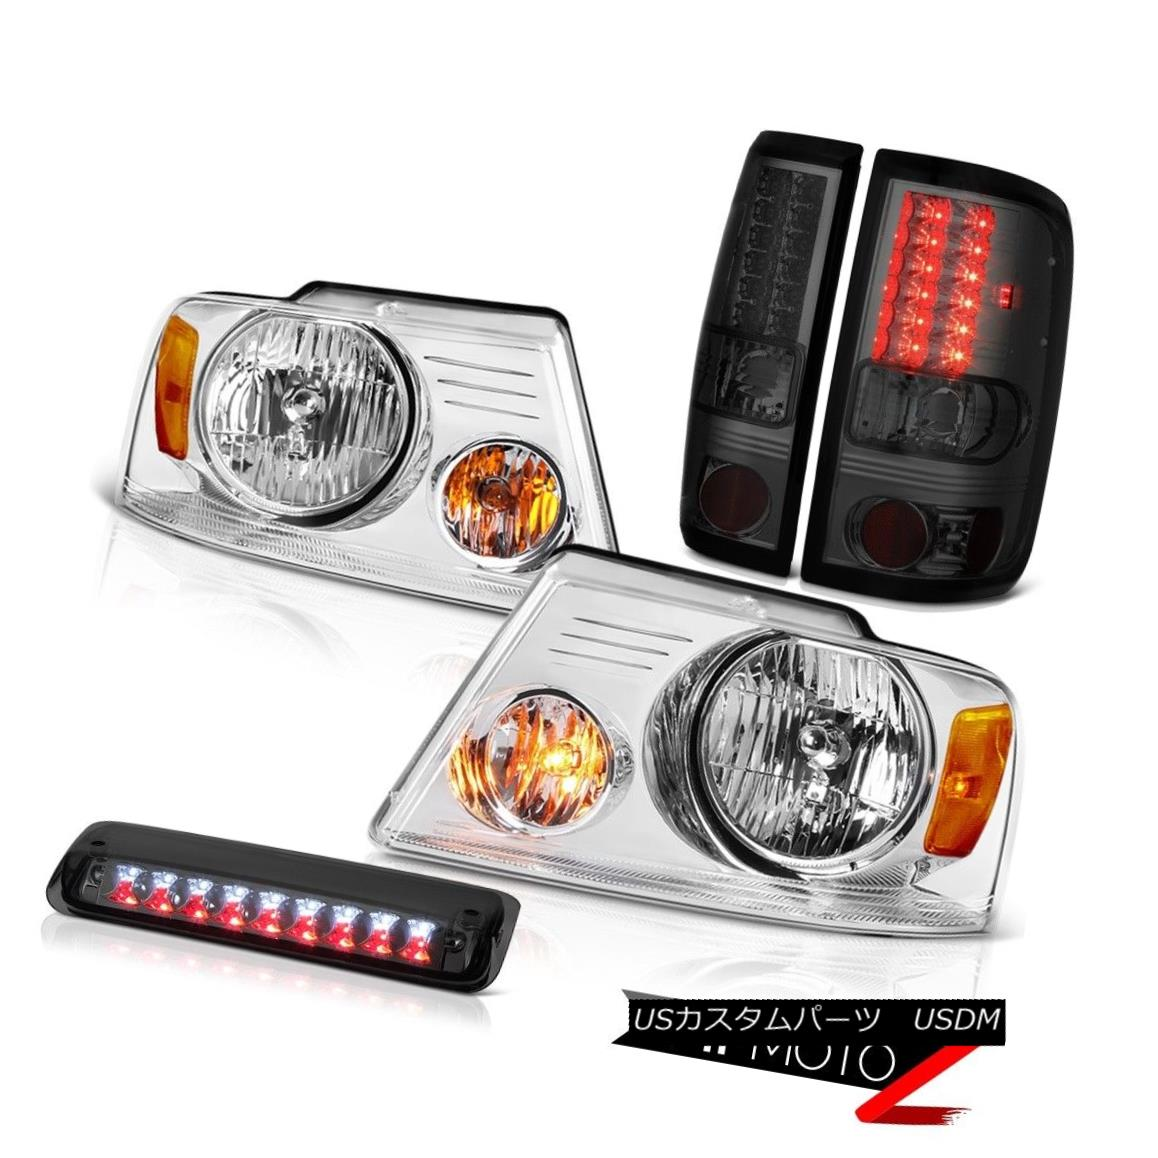 テールライト 04-08 Ford F150 Lariat Headlights Roof Cab Lamp Tail Brake Lamps